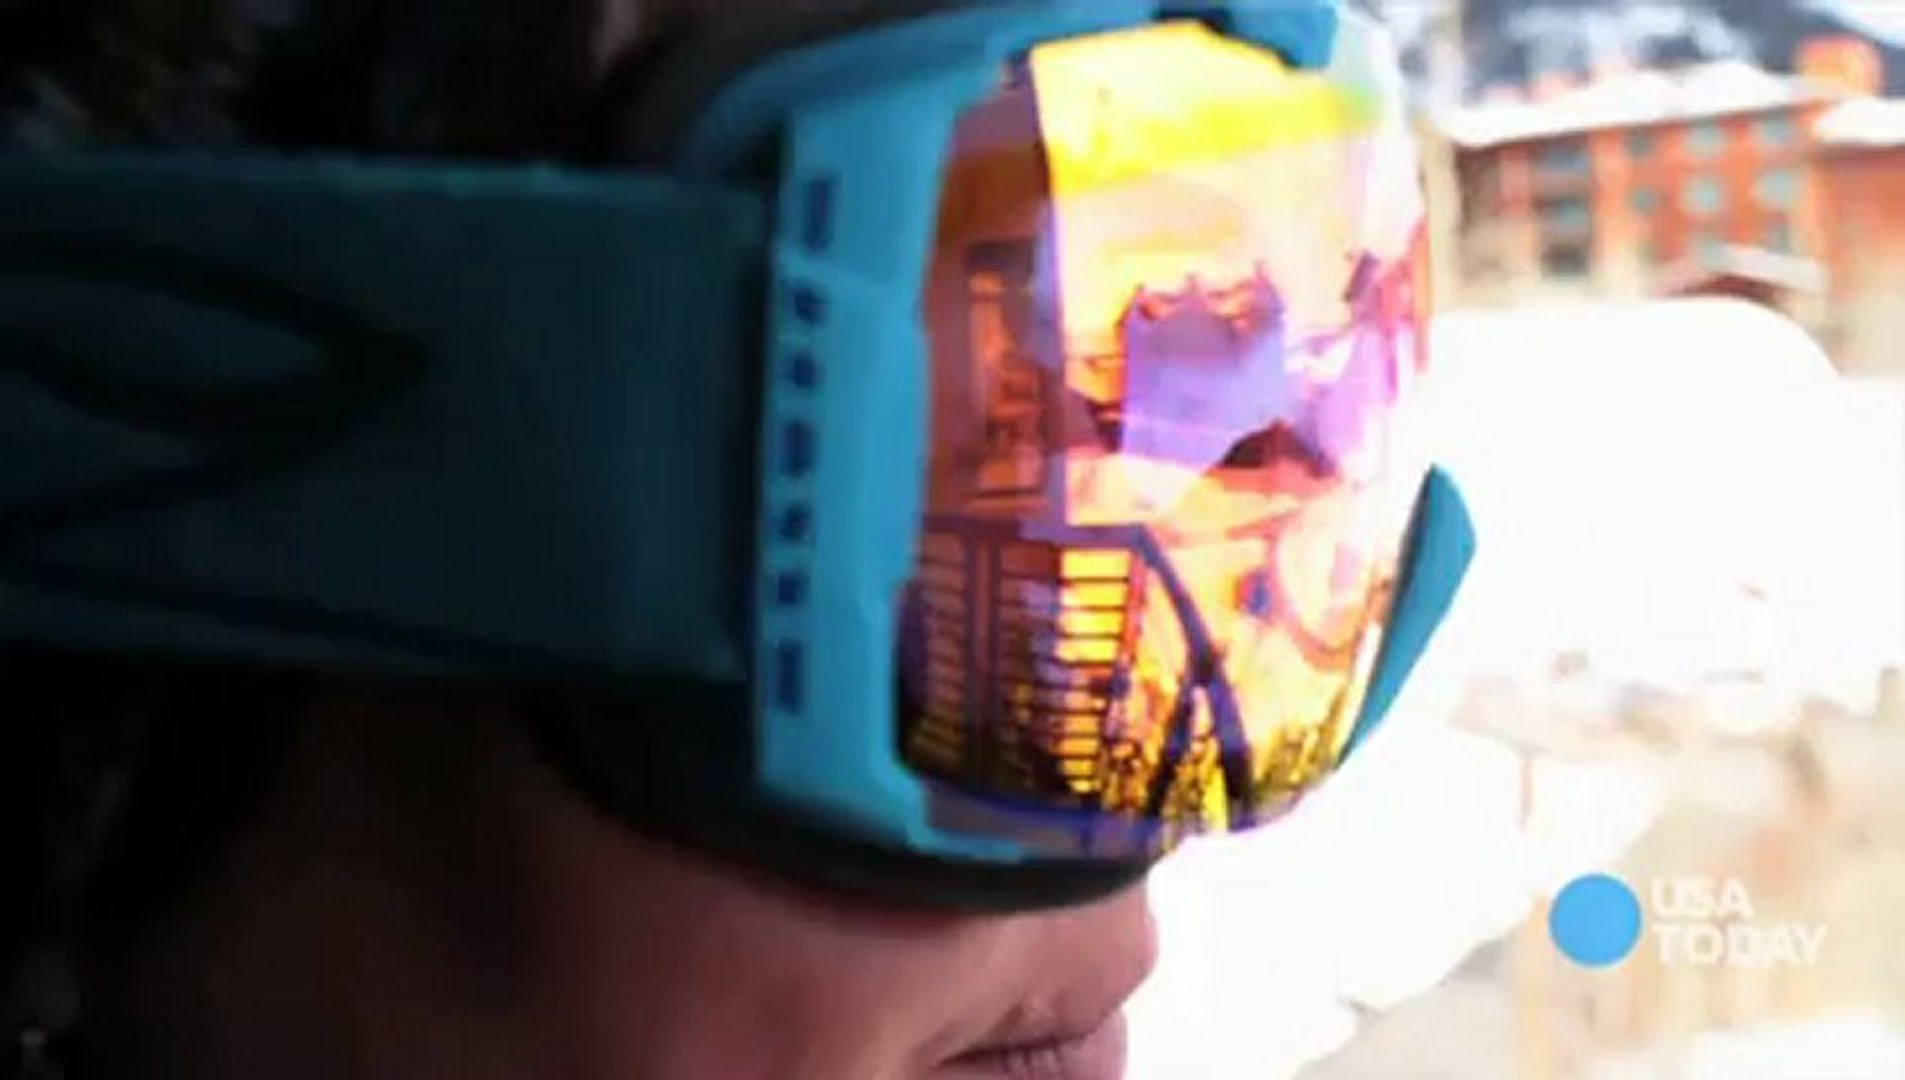 TECH NOW: Ski gear goes high tech, Part 2